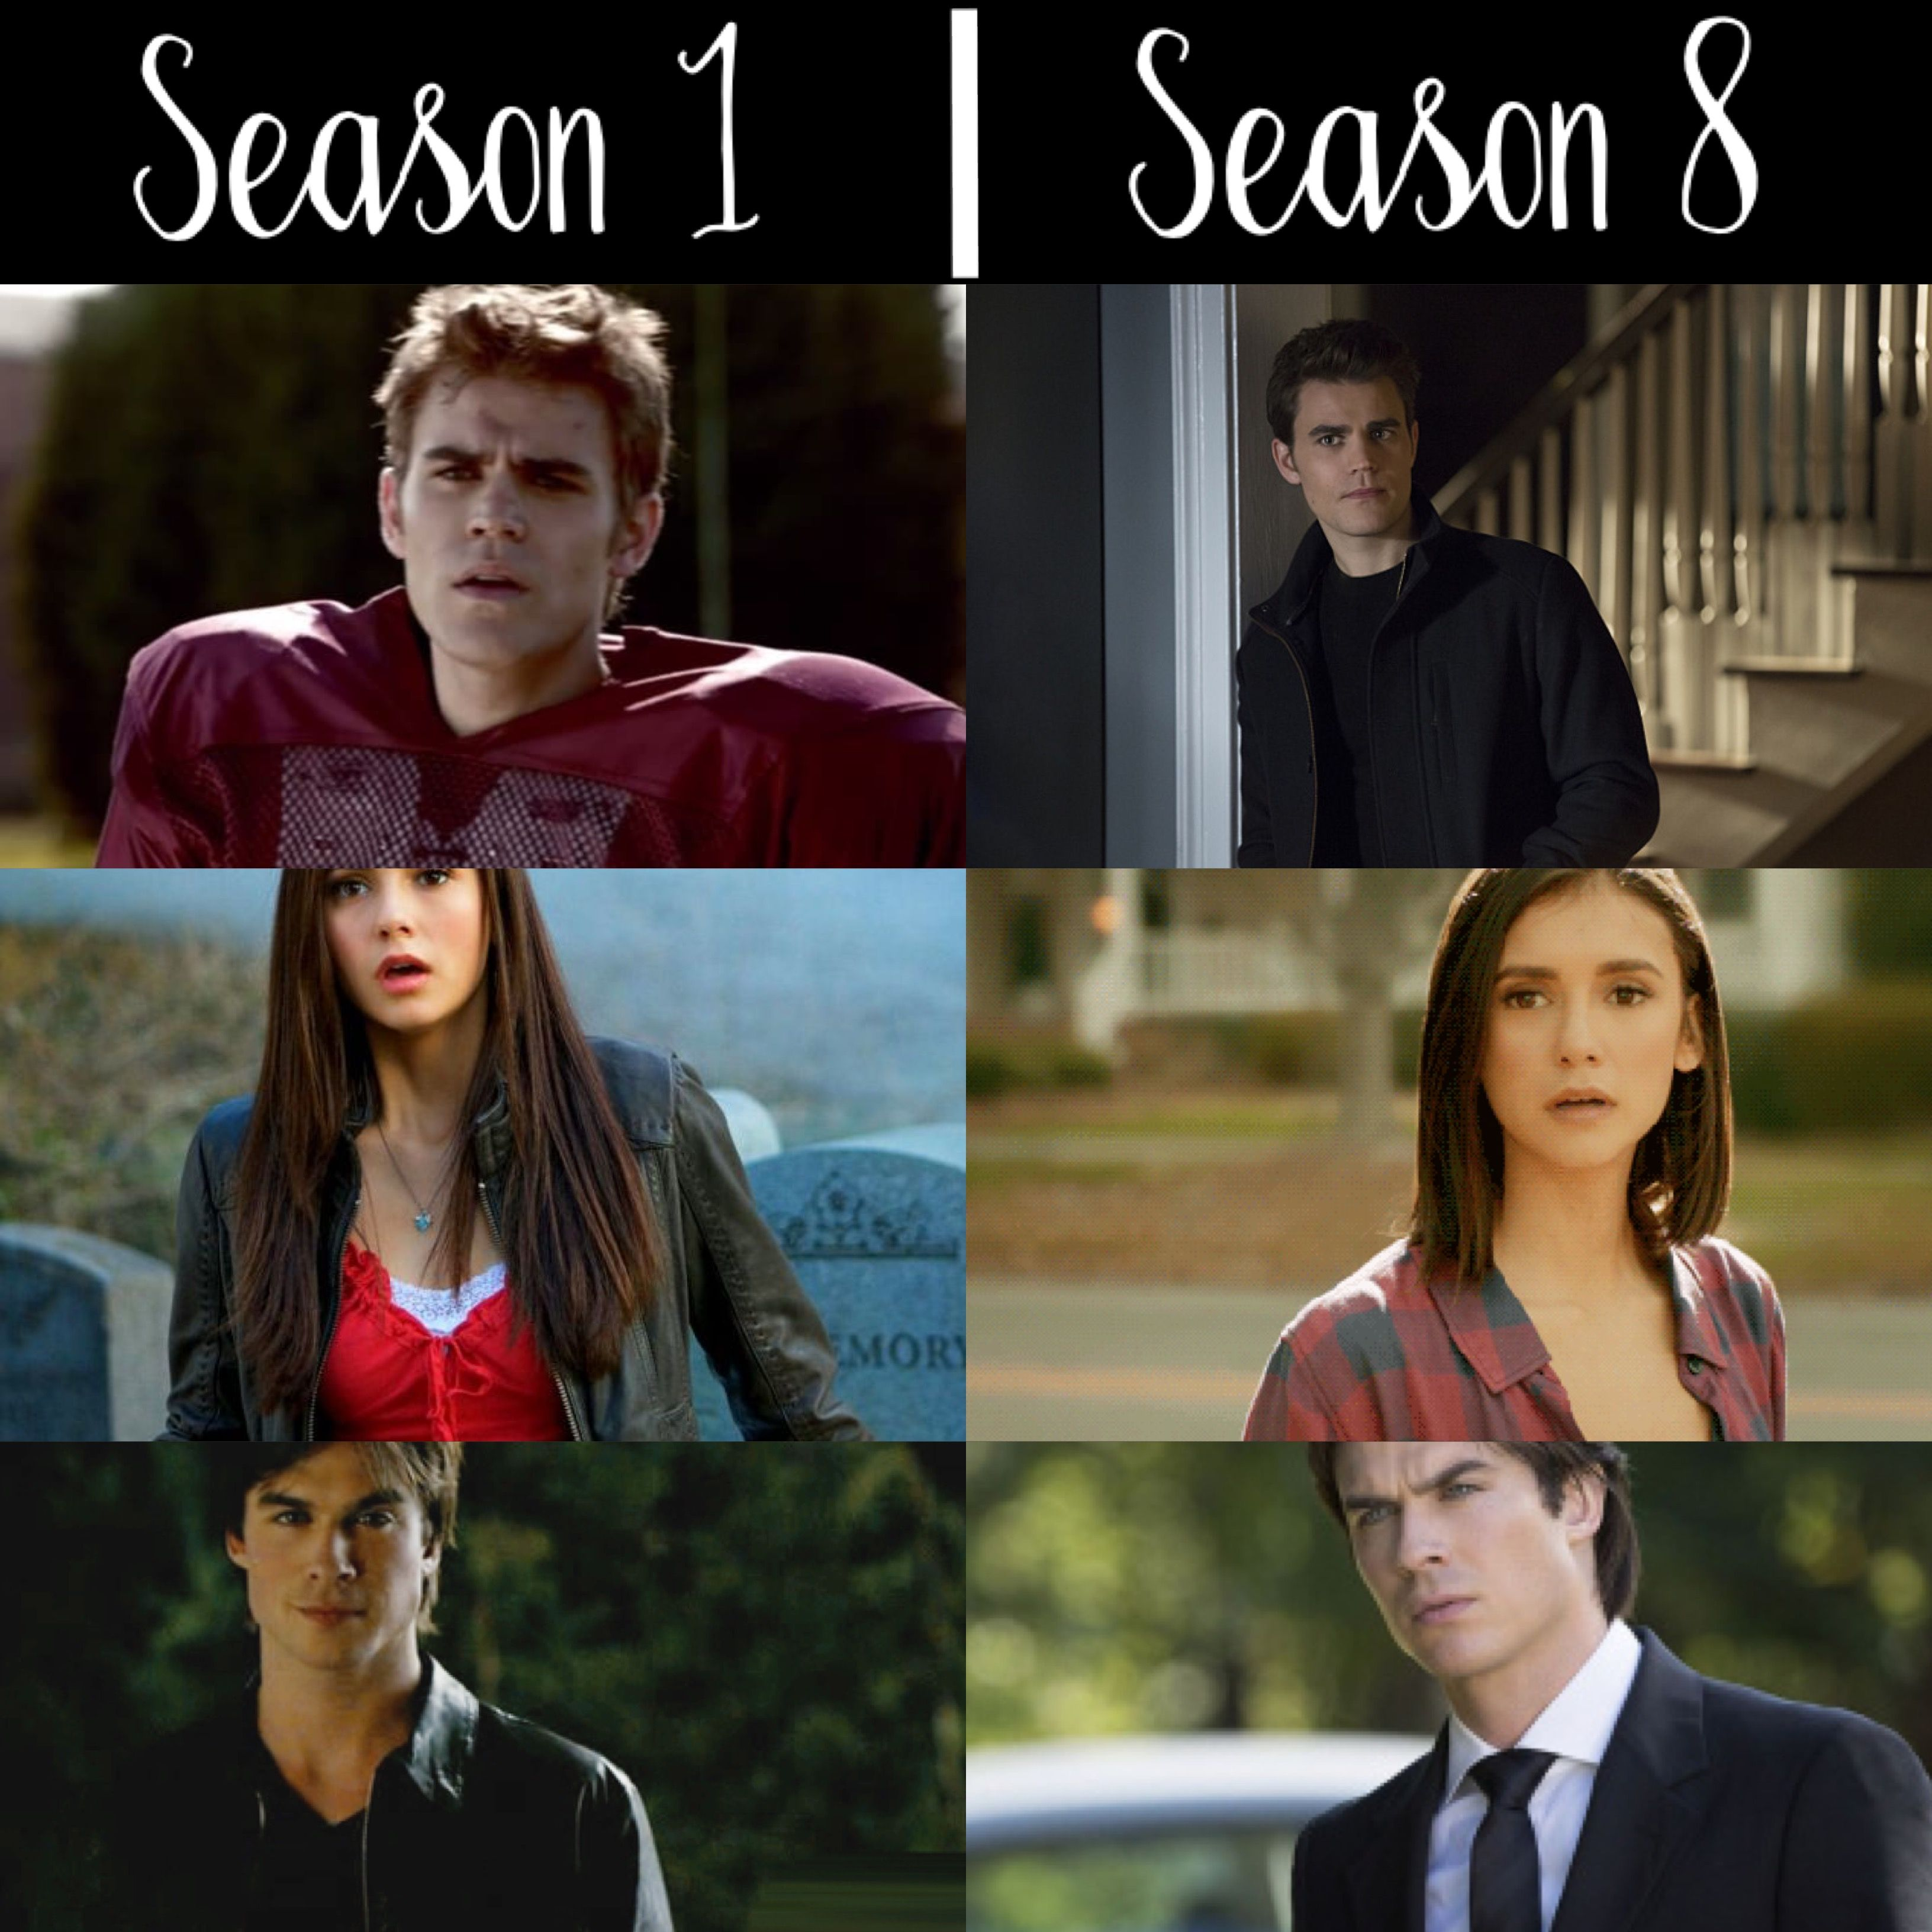 The Vampire Diaries season 9: Is it renewed or cancelled?